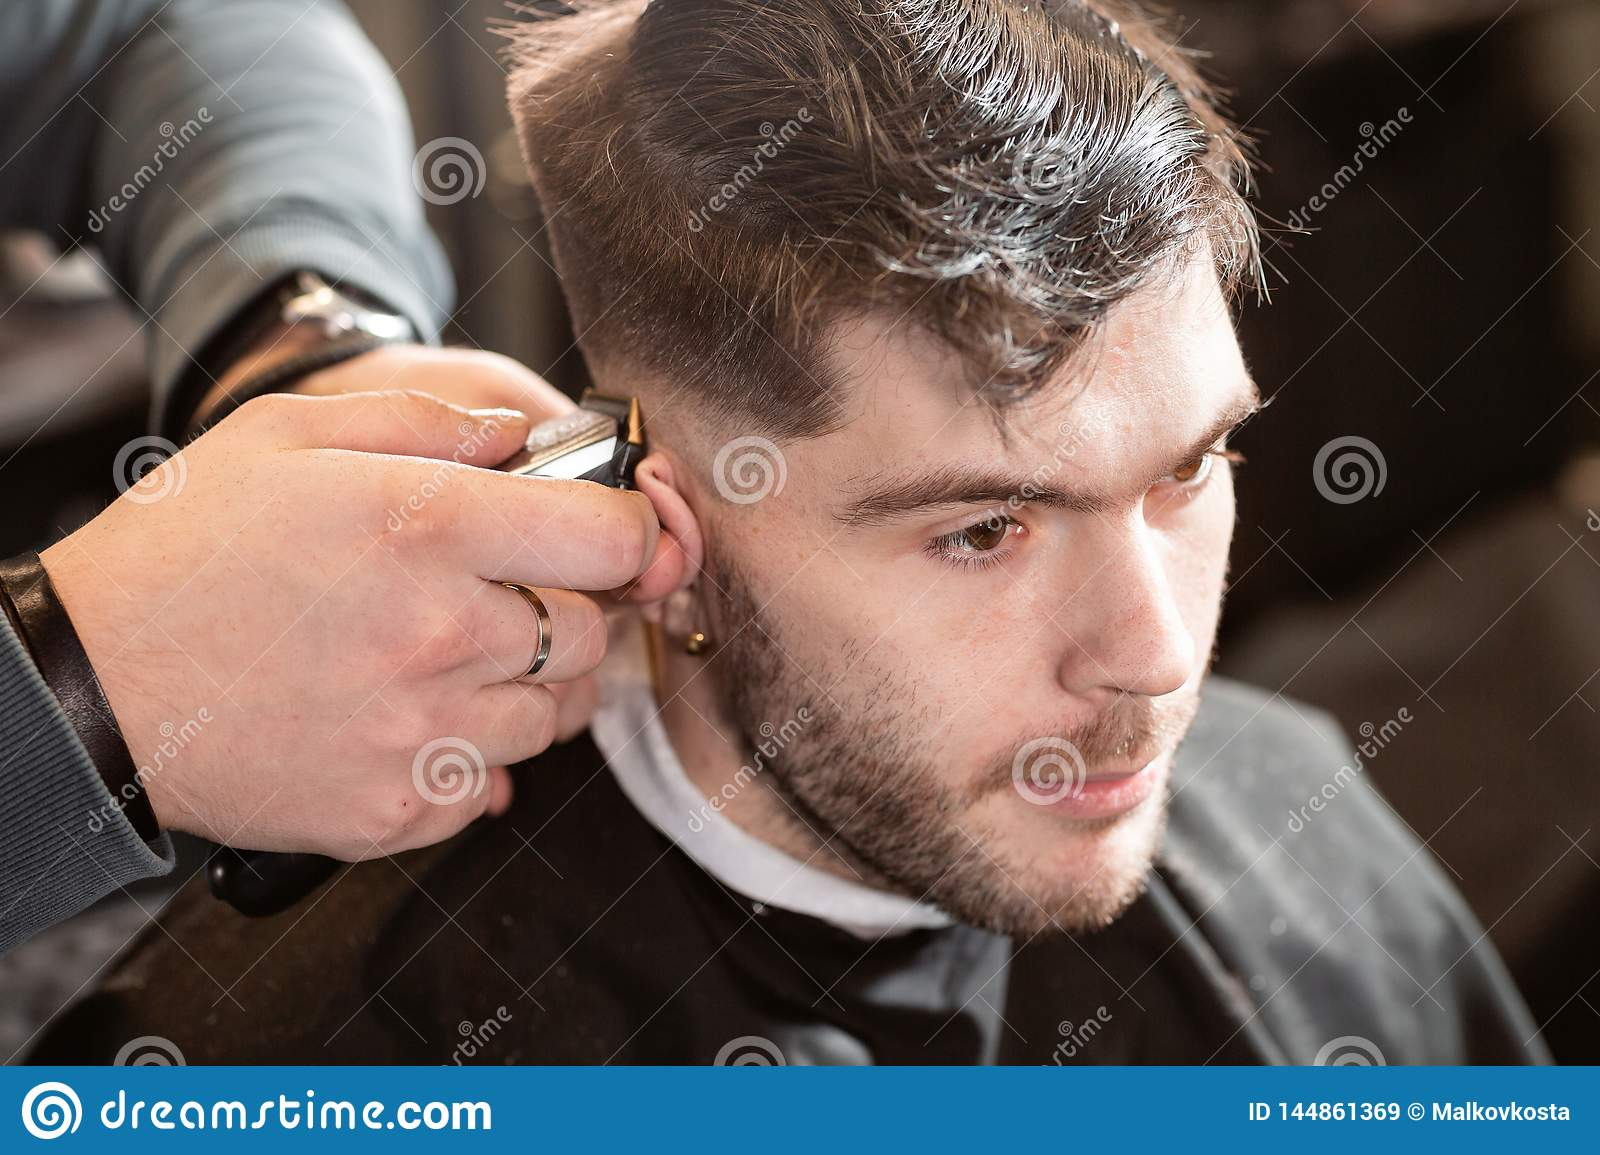 Barber work with clipper machine in barbershop. Professional trimmer tool cuts beard and hair on young guy in barber